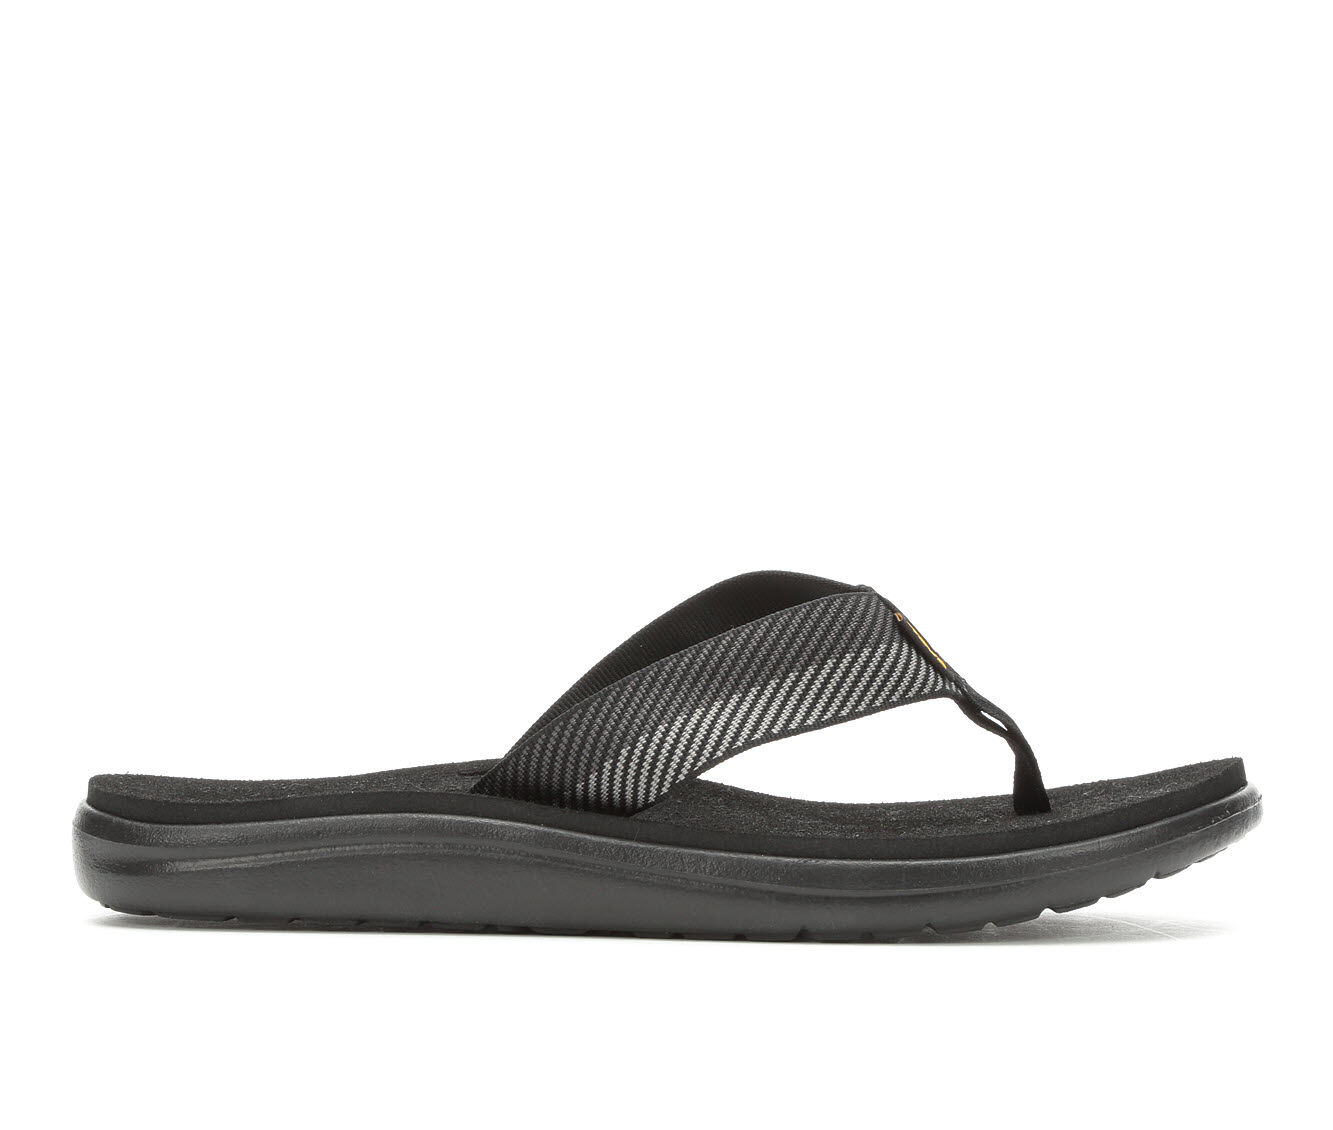 cheapest latest series Men's Teva Voya Flip Flip-Flops Black/Grey